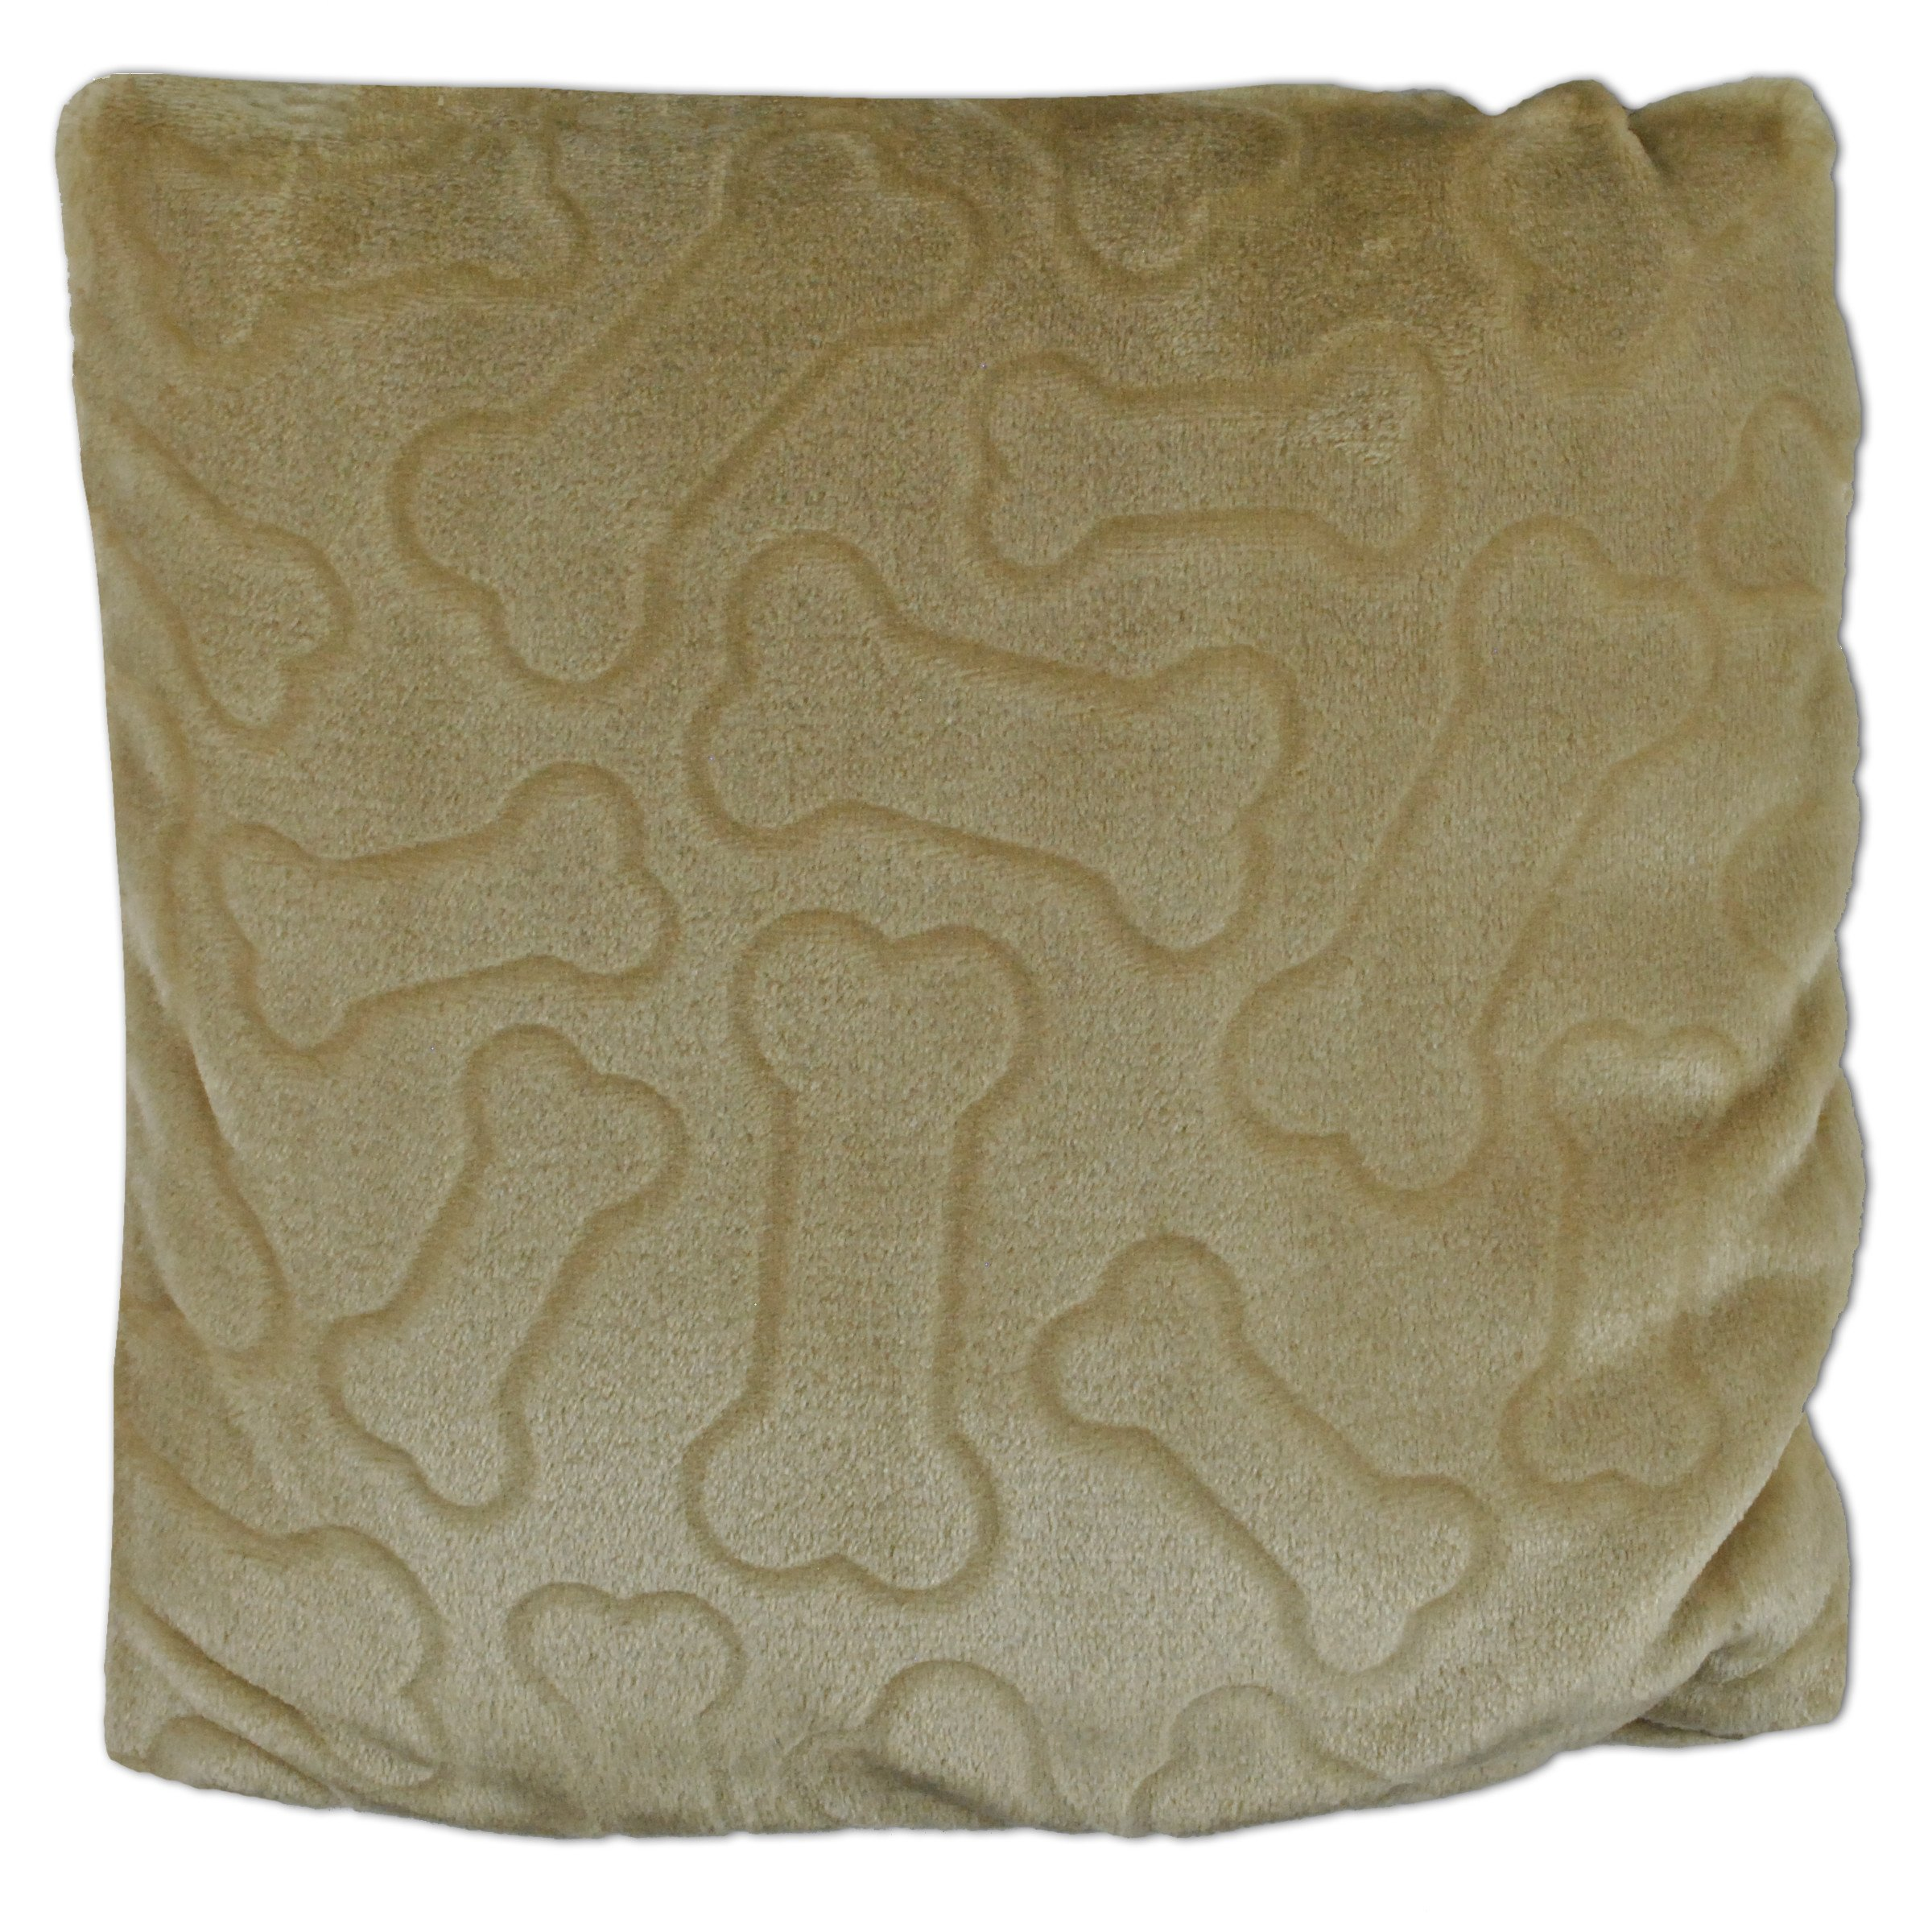 Bone Dry DII Medium Pet Pllow Blanket for Dogs and Cats, 50x60, Warm, Soft and Plush for Couch, Car, Trunk, Cage, Kennel, Dog House-Taupe